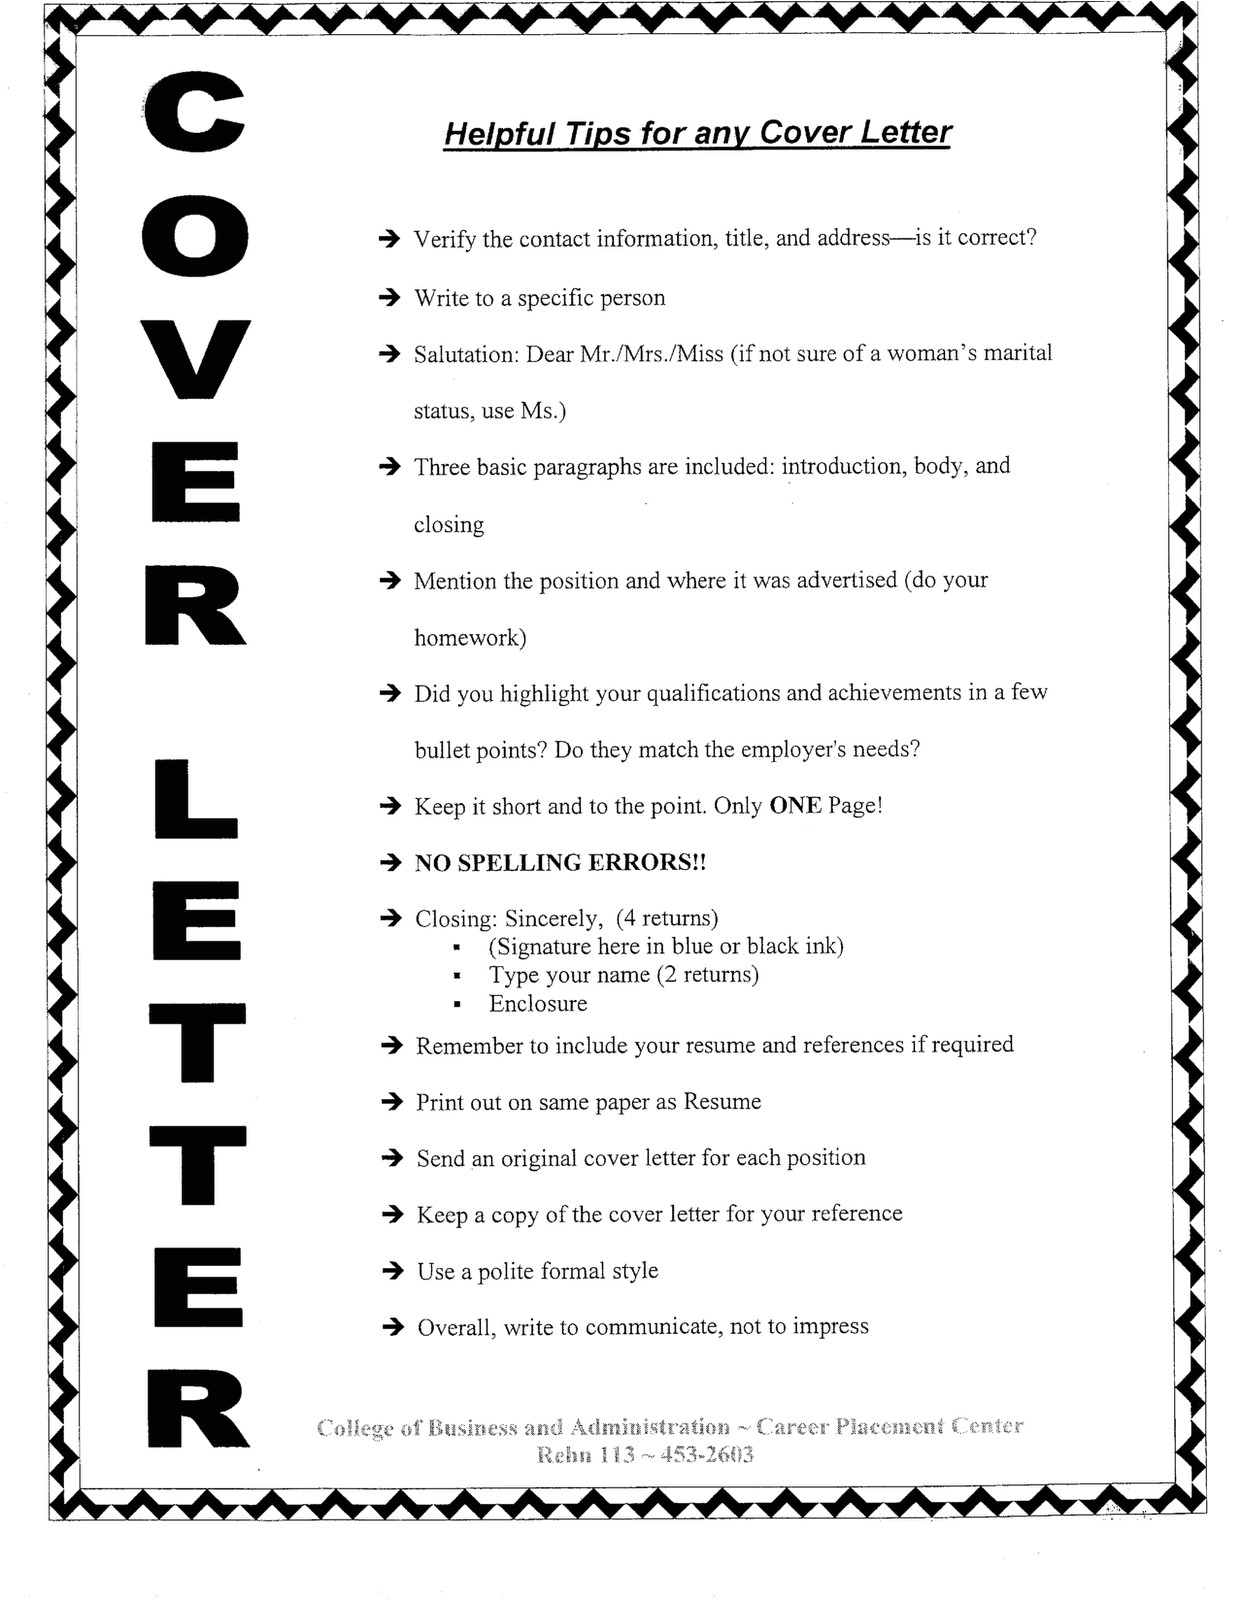 Who to Write A Cover Letter to without A Name How to Write A Cover Letter without Contact Name Writing